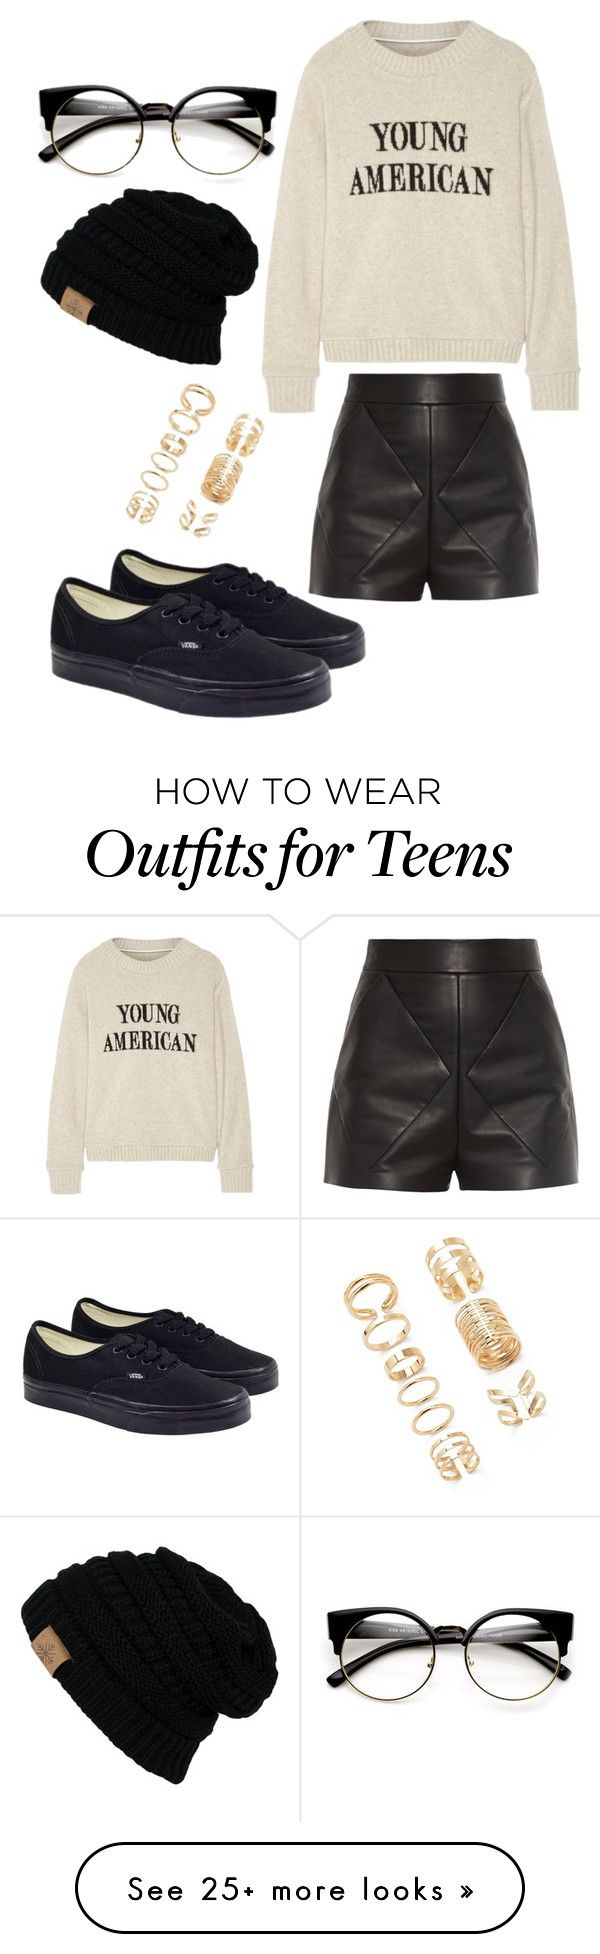 """teens clothing"" by madisonksykes on Polyvore featuring Balenciaga, The Elder Statesman, Vans and Forever 21"